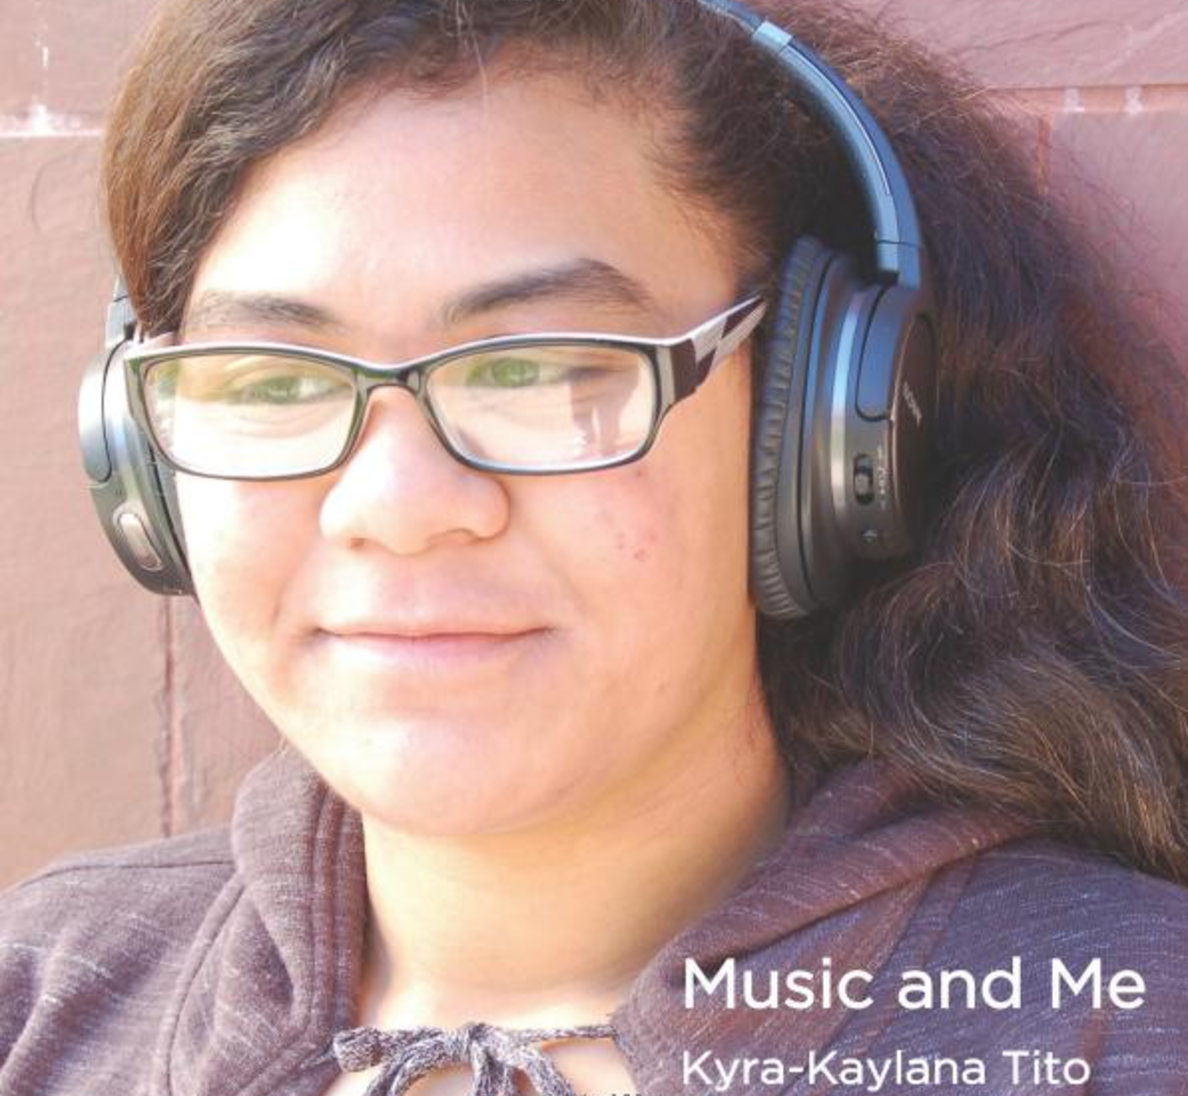 Music and Me  This book explores a young woman's interest in music and how it brightens her mood.   Buy this book.